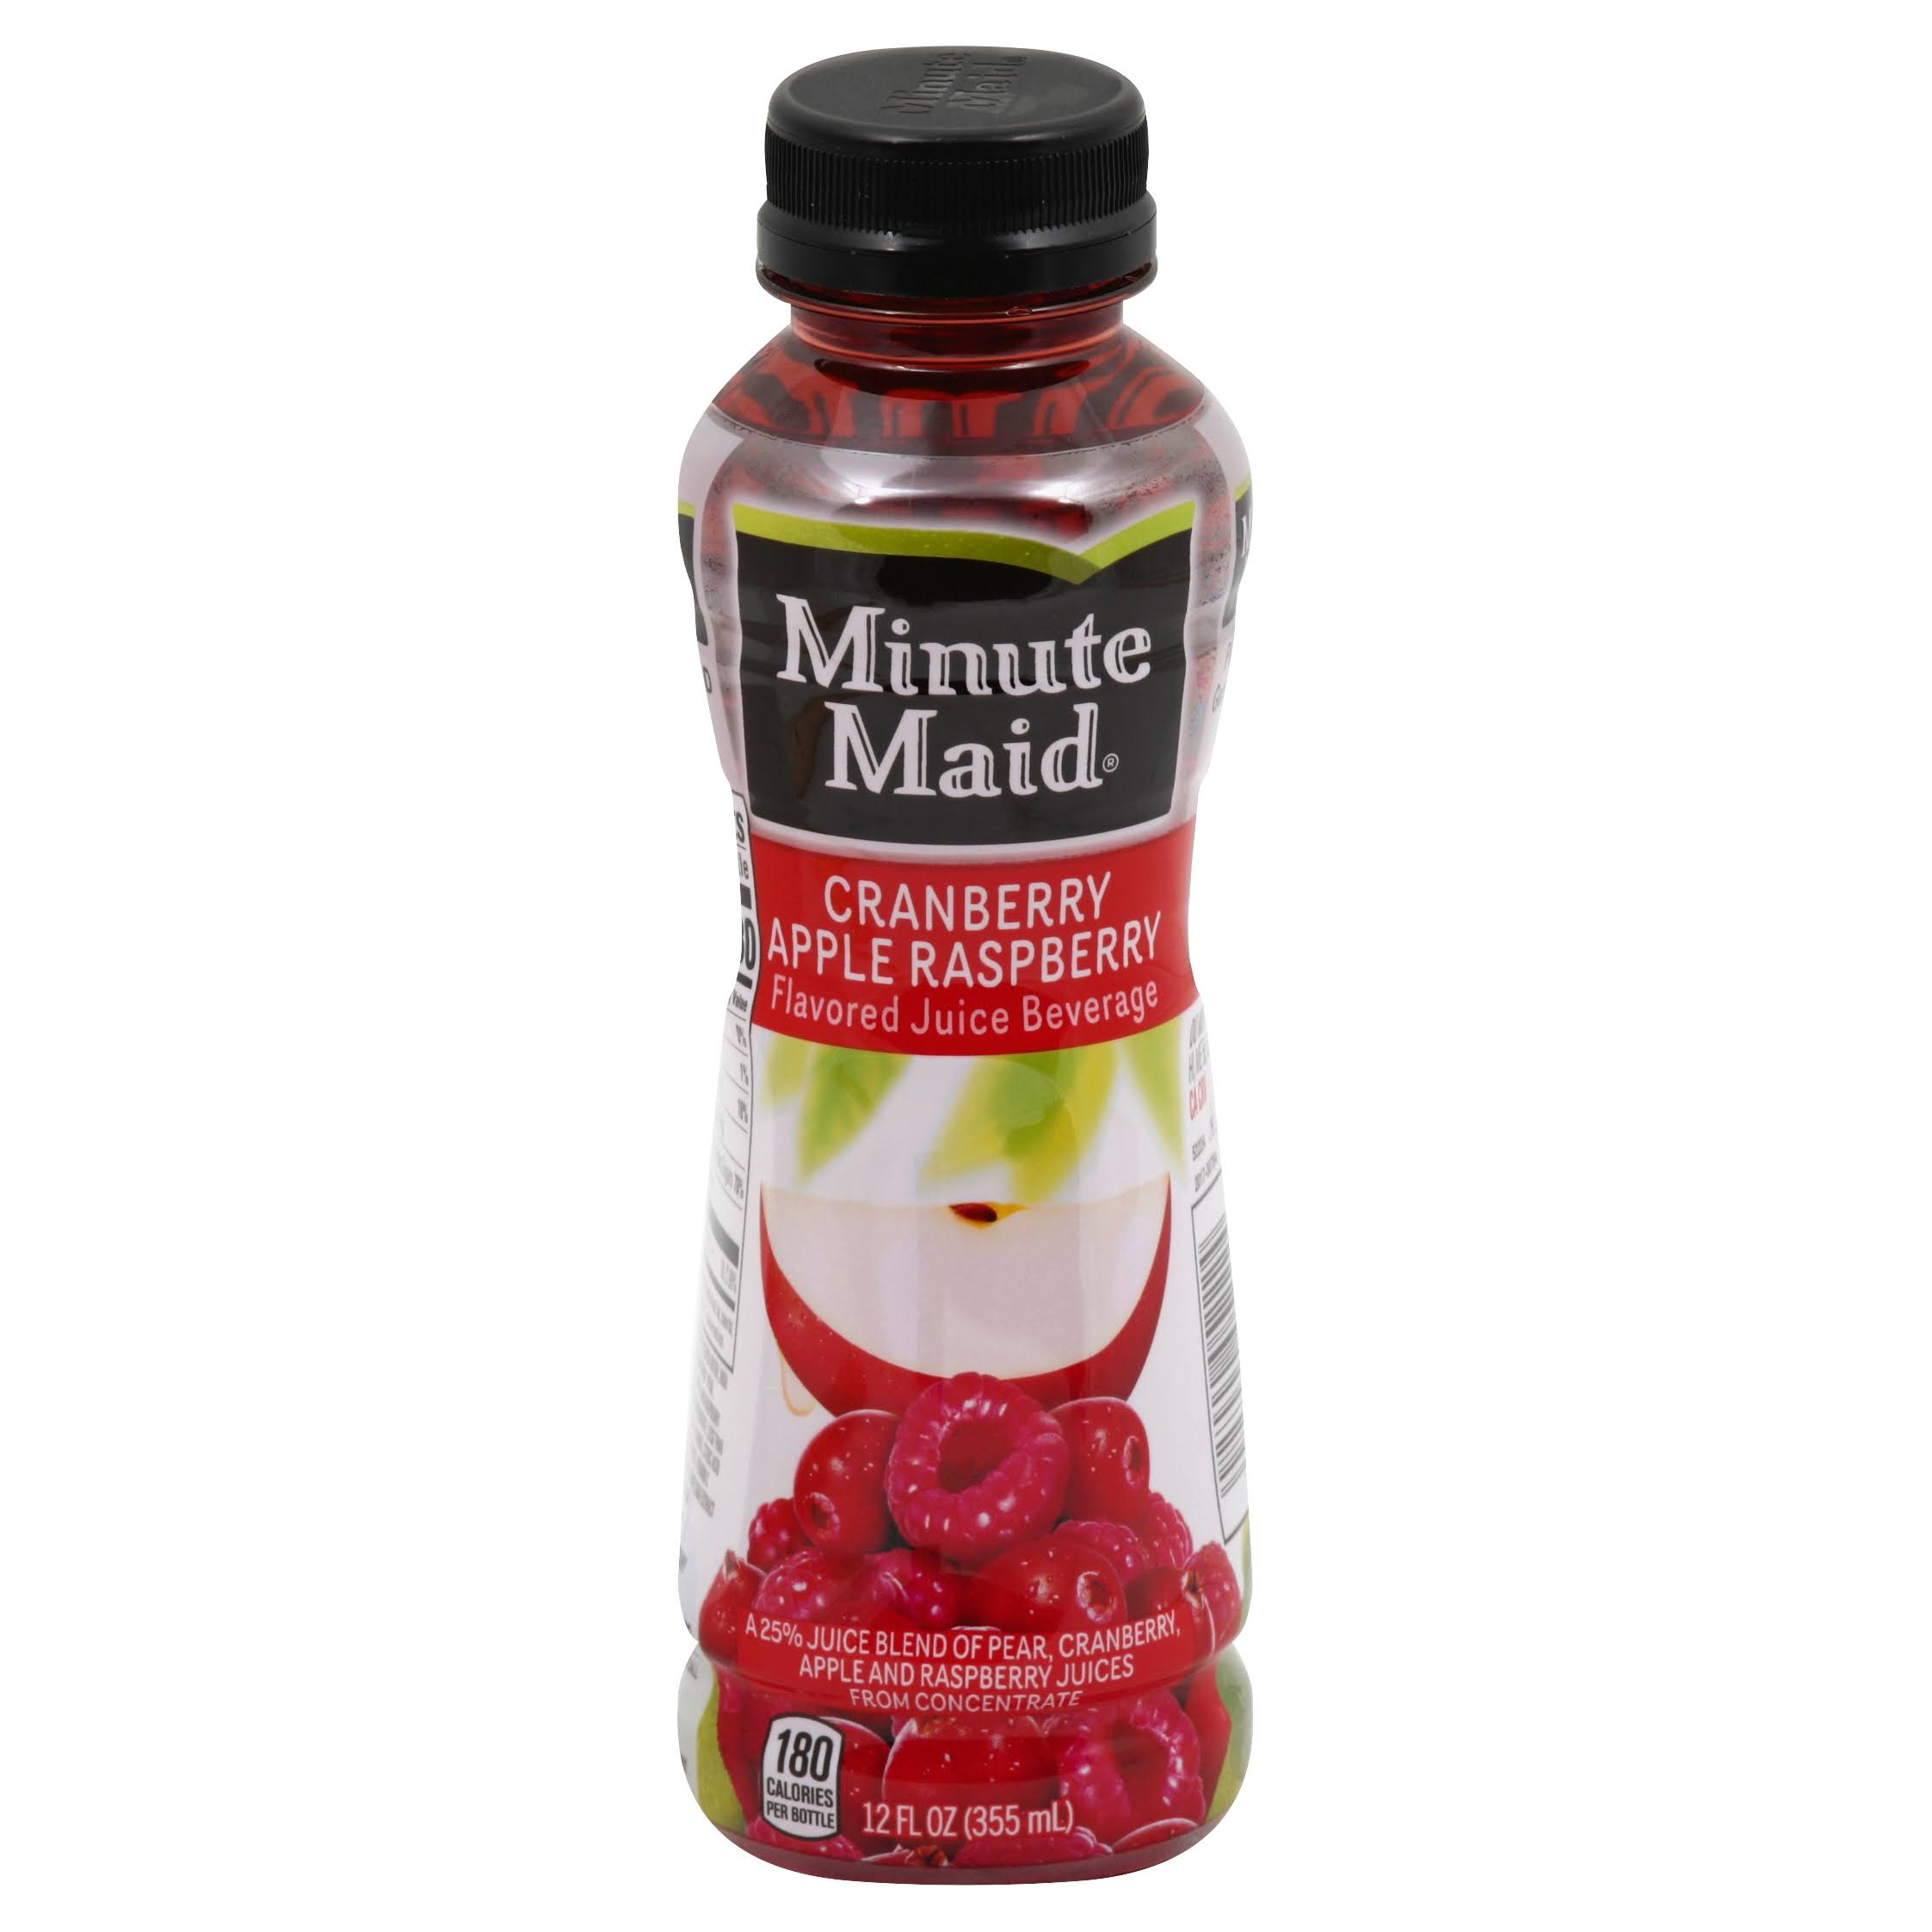 Minute Maid Juice Beverage, Flavored, Cranberry Apple Raspberry - 12 fl oz